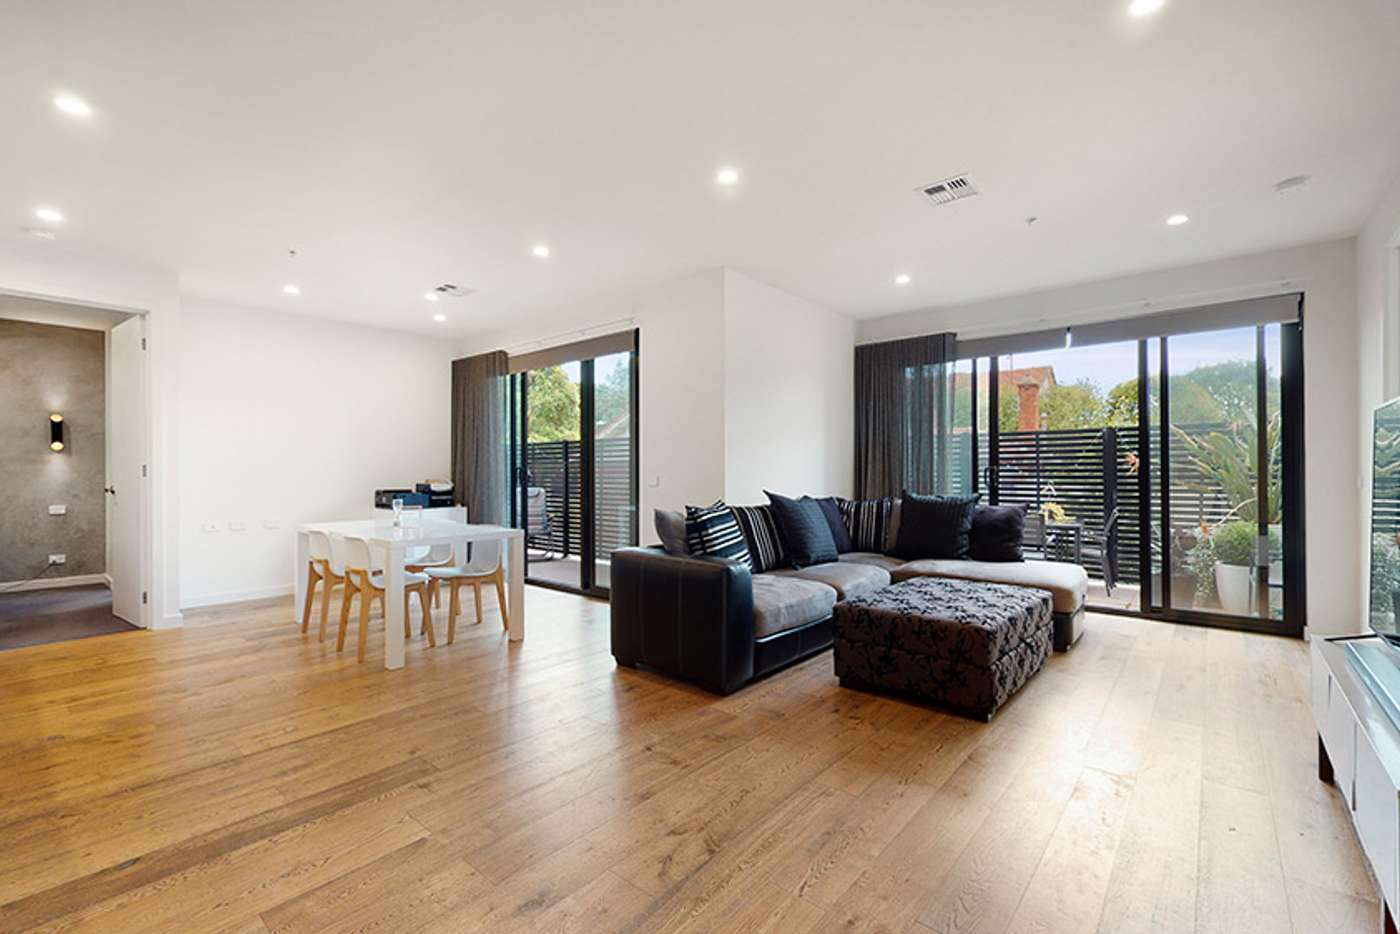 Main view of Homely apartment listing, 102/7 Cowra Street, Brighton VIC 3186